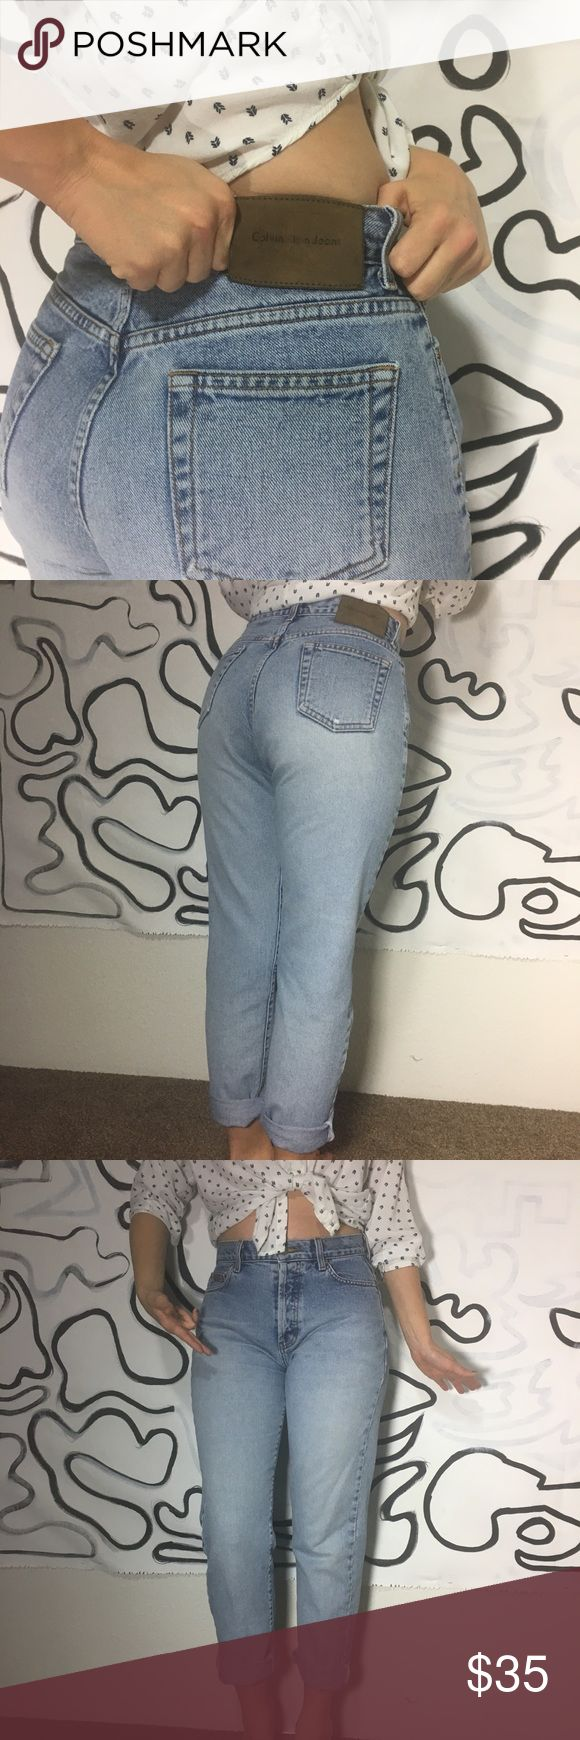 Calvin Klein High Waisted Jeans Vintage Mom Jeans Size 5. I'm a size 6 and these do fit but rather tightly as I'm on the curvy side.  Great vintage condition.  Light wash   Buttery soft denim Calvin Klein Jeans Jeans Straight Leg